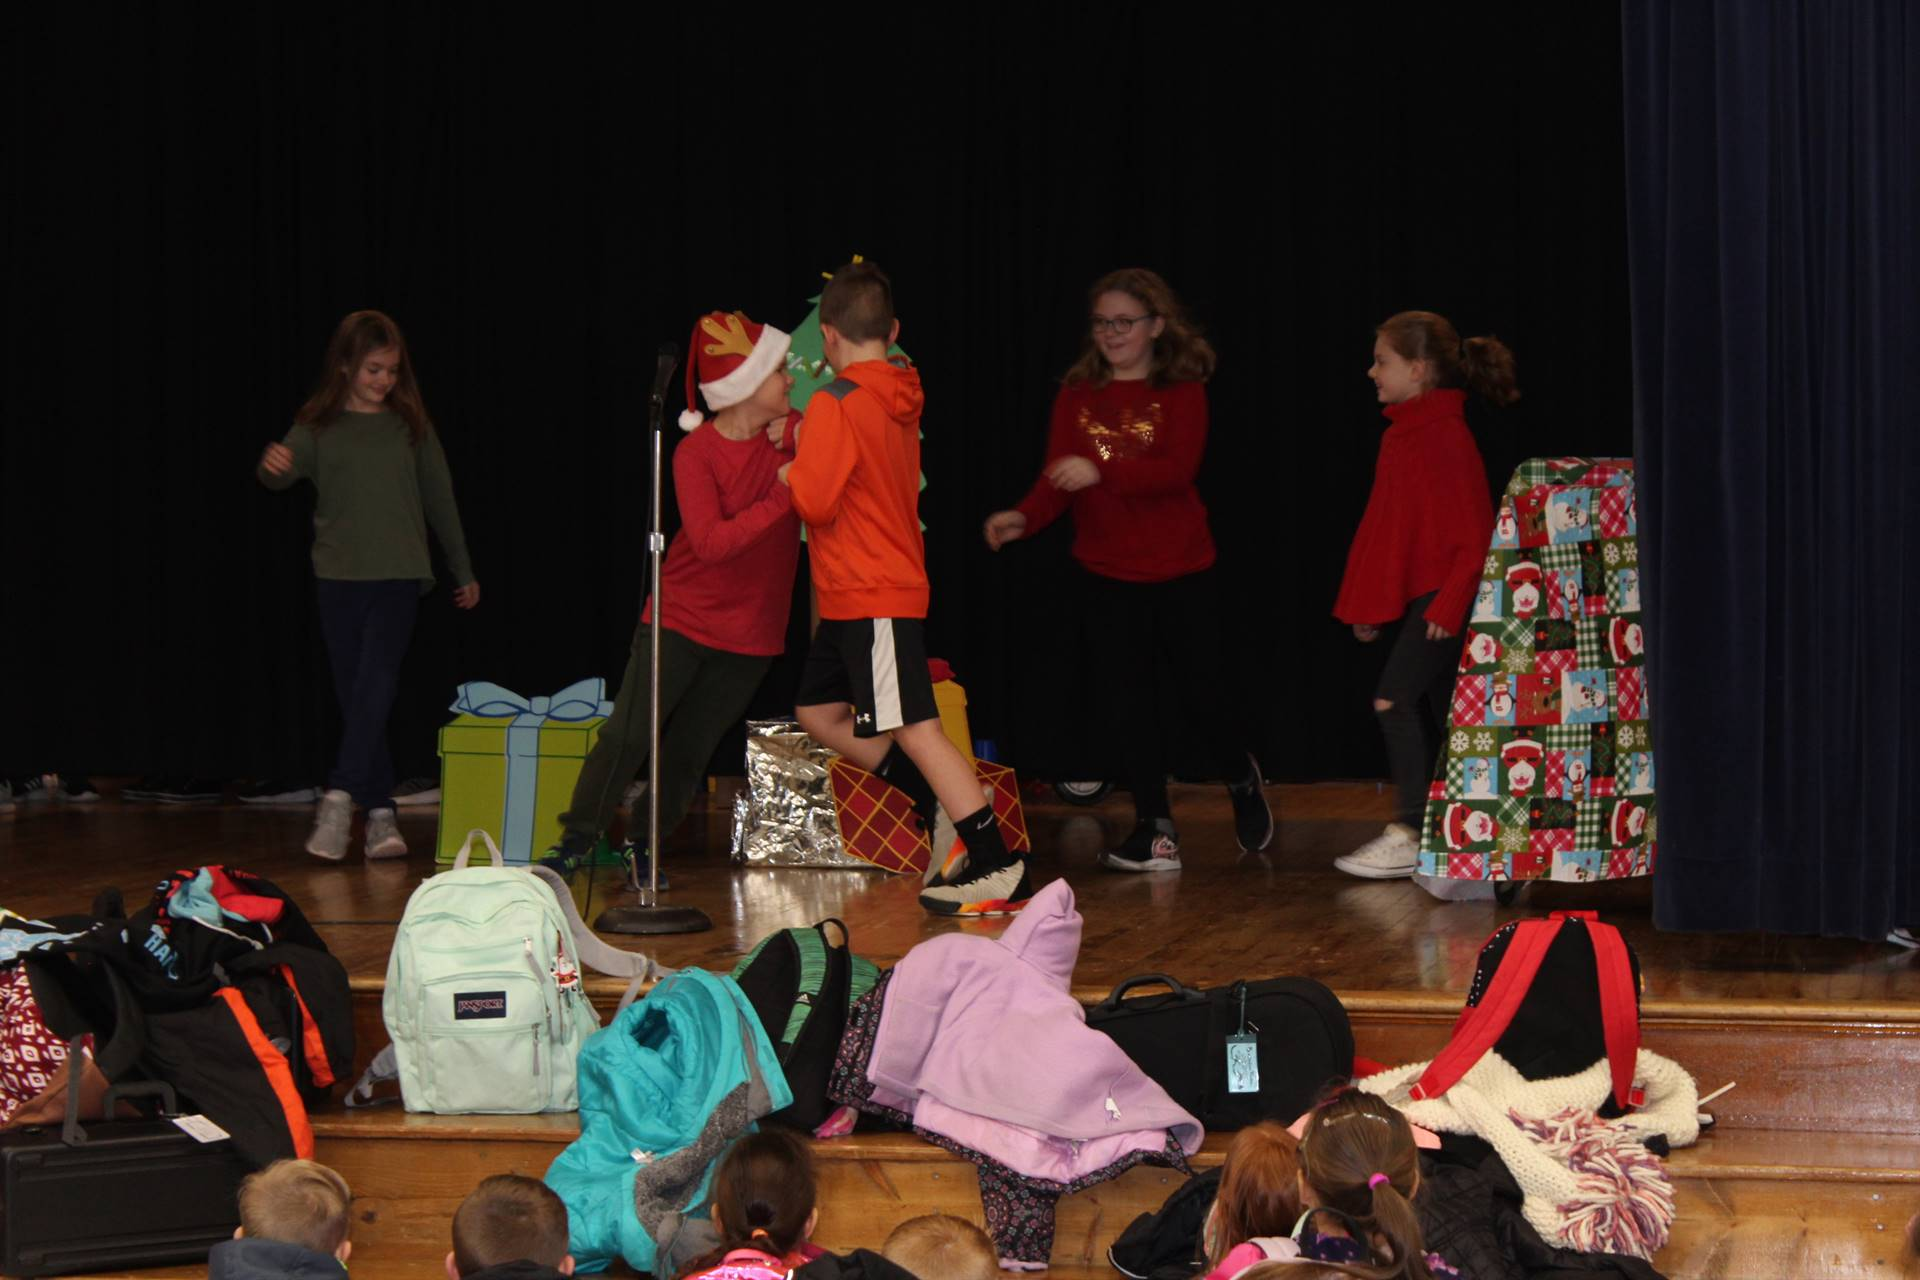 Students performing in the skit